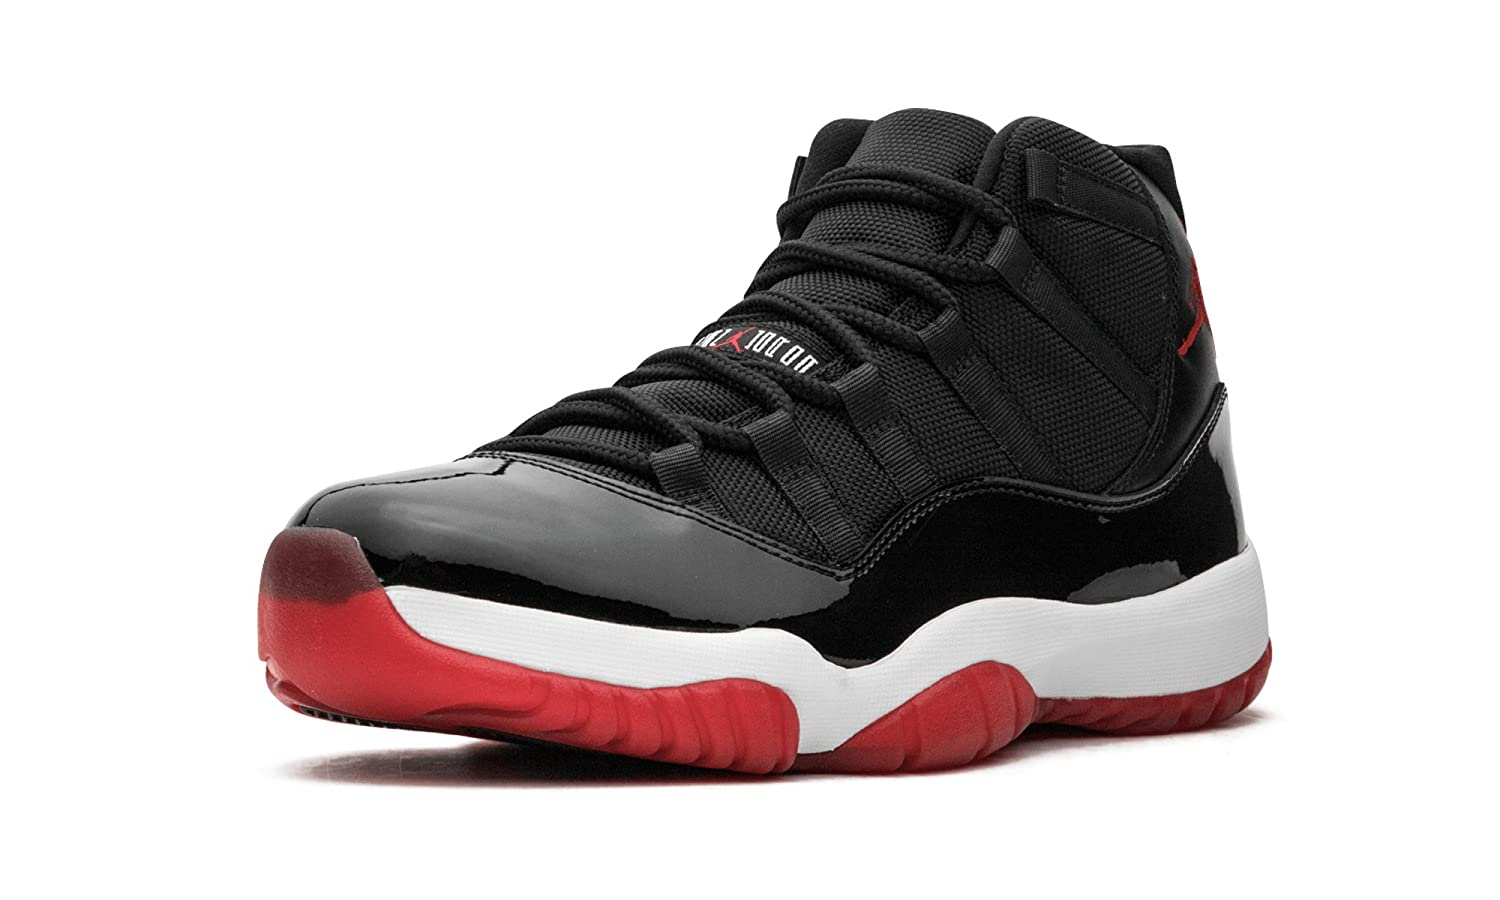 newest e5743 14251 AIR JORDAN 11 Retro BRED  2012 Release  -378037-010 - Size 14-UK   Amazon.co.uk  Shoes   Bags